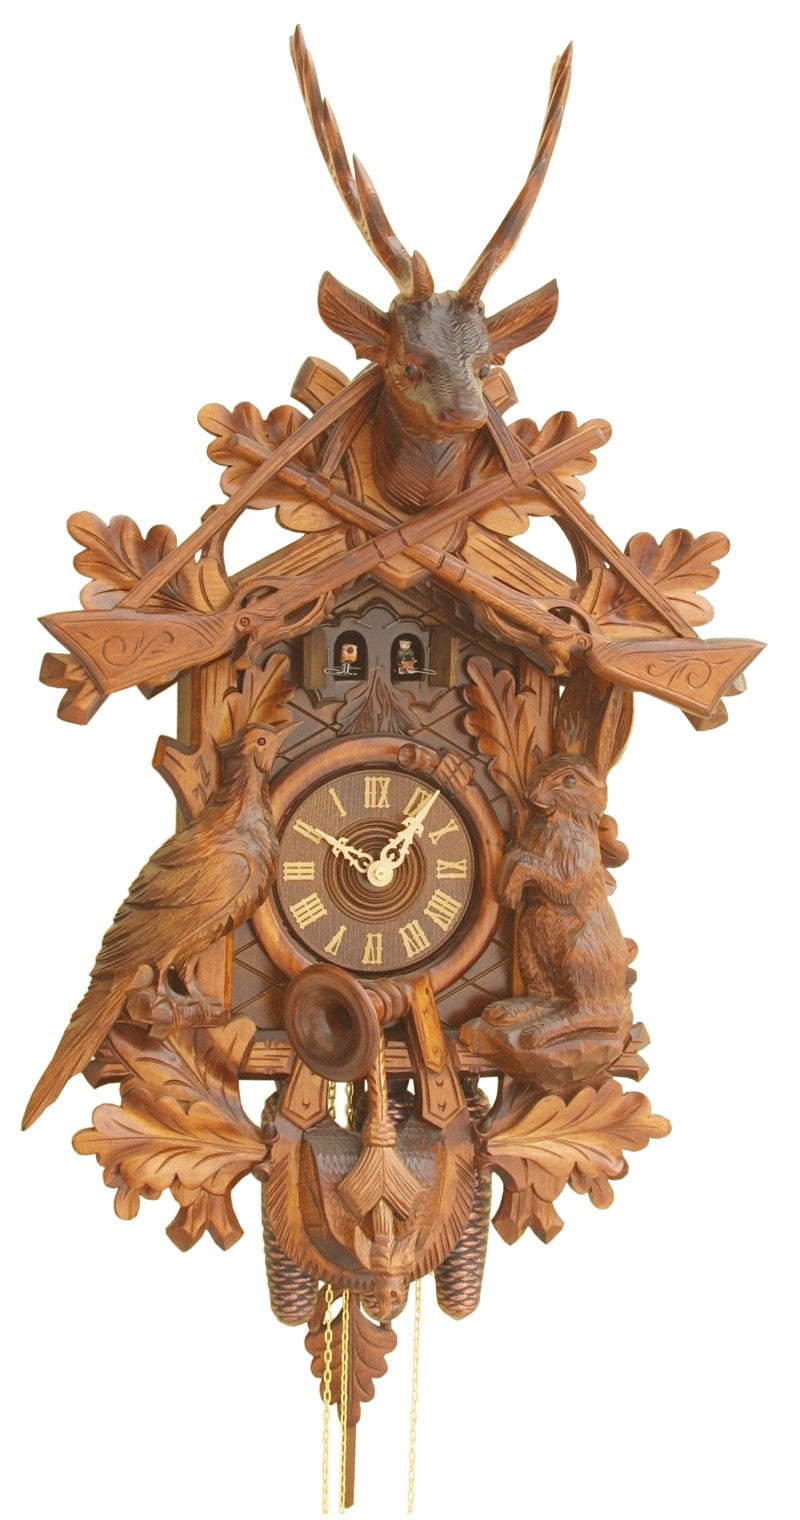 Cuckoo Clock Hunting Clock with Animals 8-Day Movement Music - Cuckoo Clock Meister